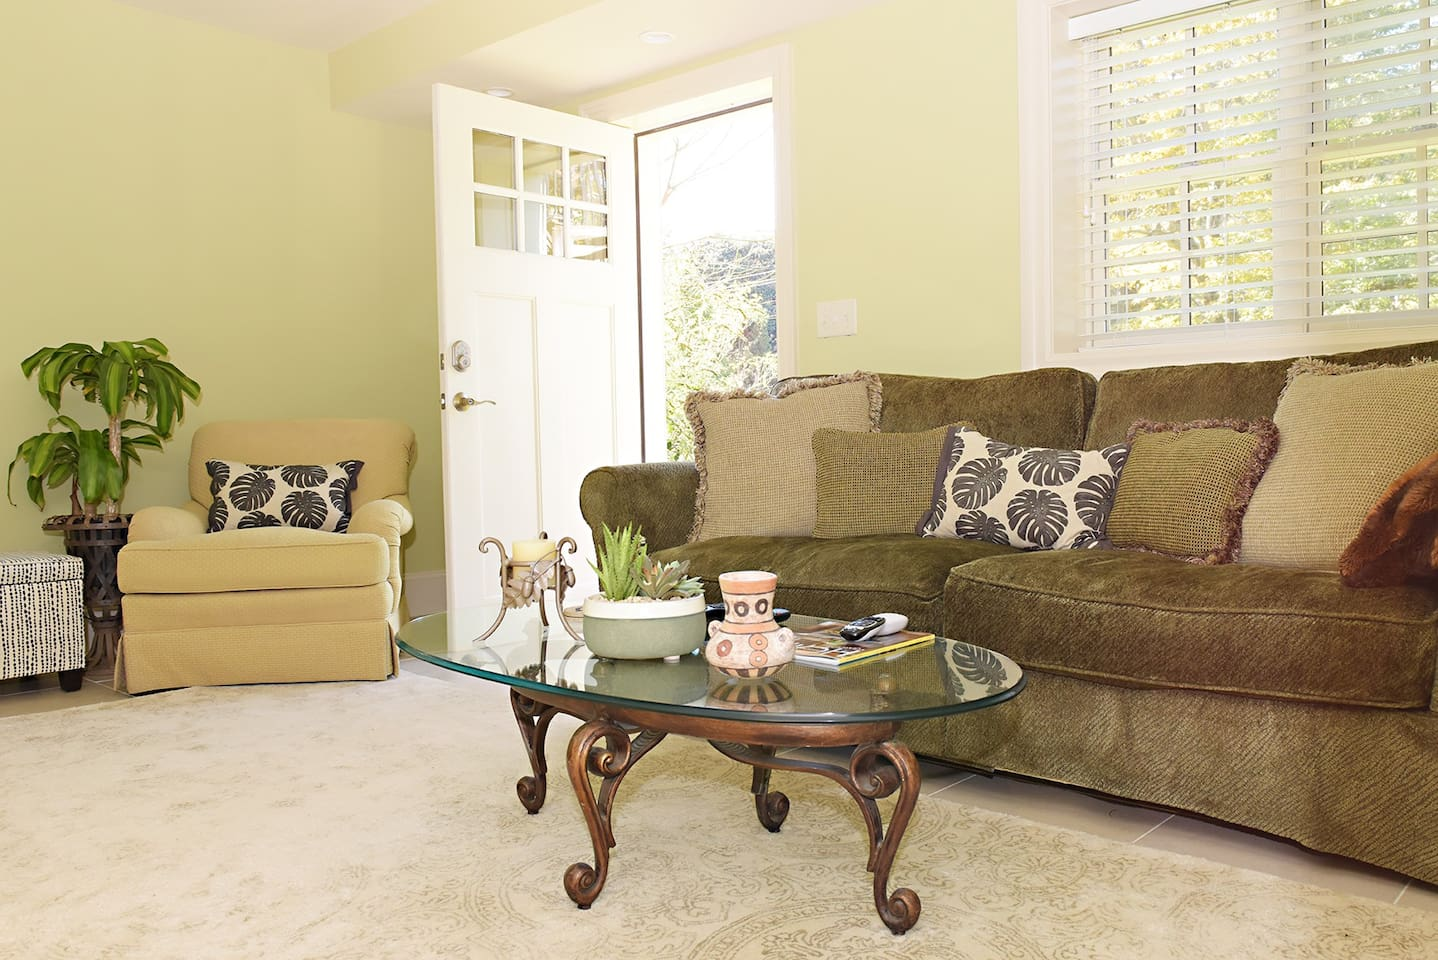 Private suite with private entrance, blocks away from the Omni Grove Park Inn. Air conditioned.